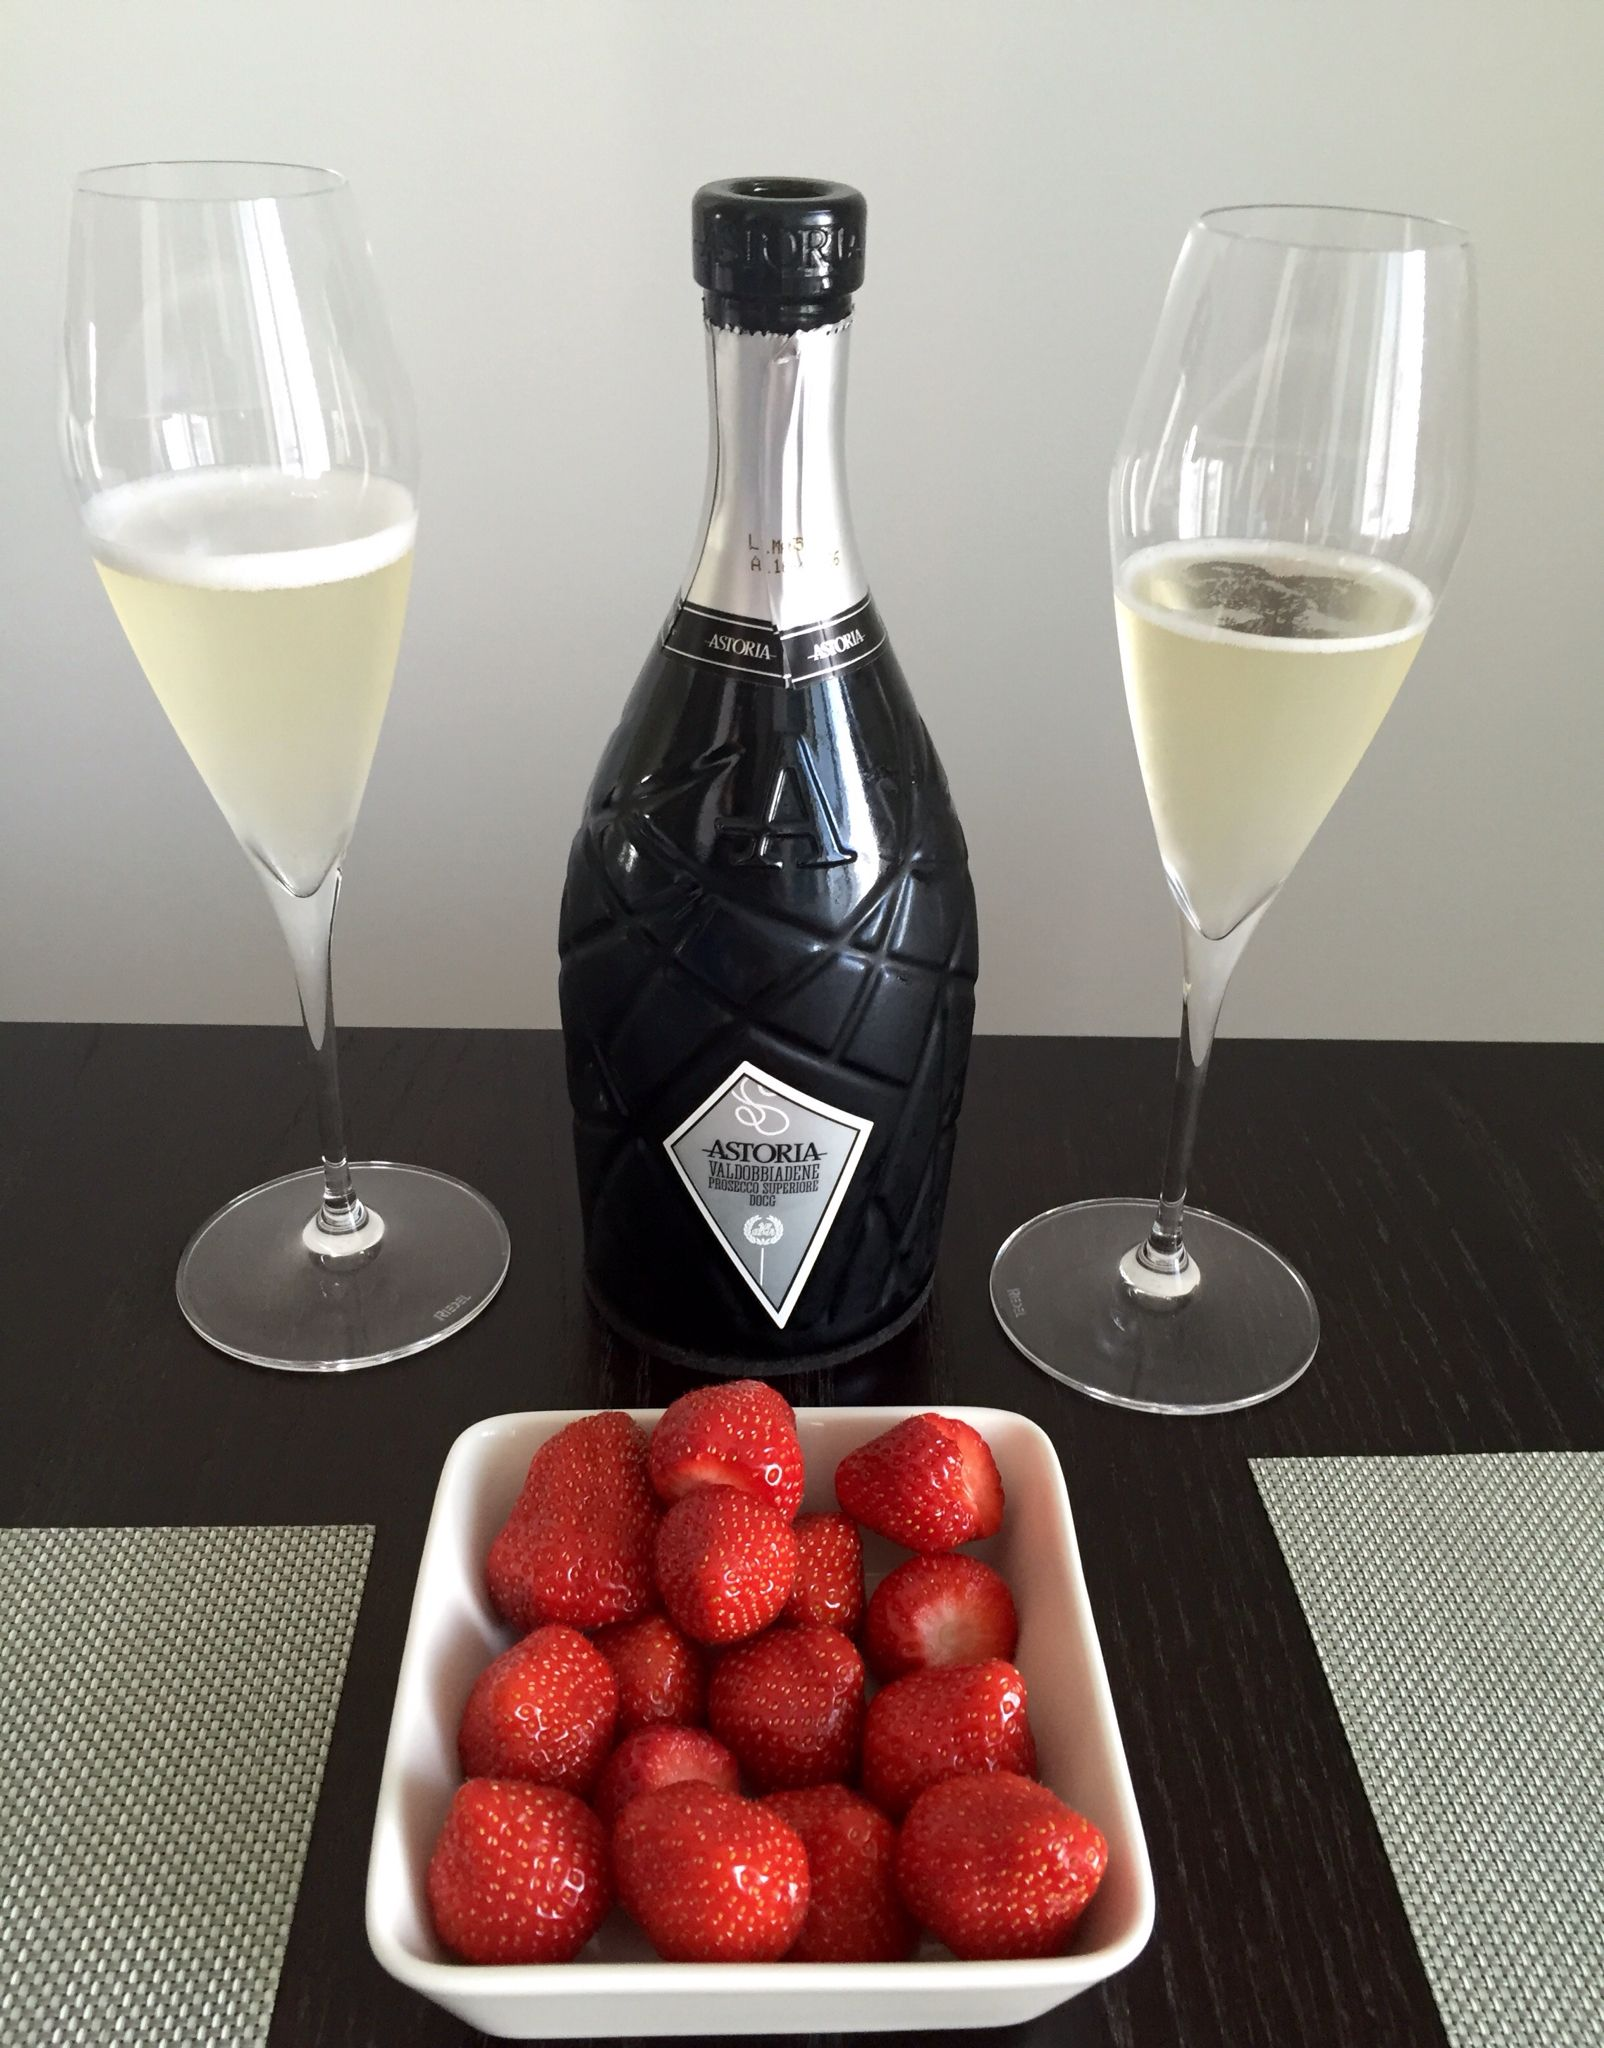 Prosecco Astoria With Finnish Strawberries Wines Alcoholic Drinks Prosecco